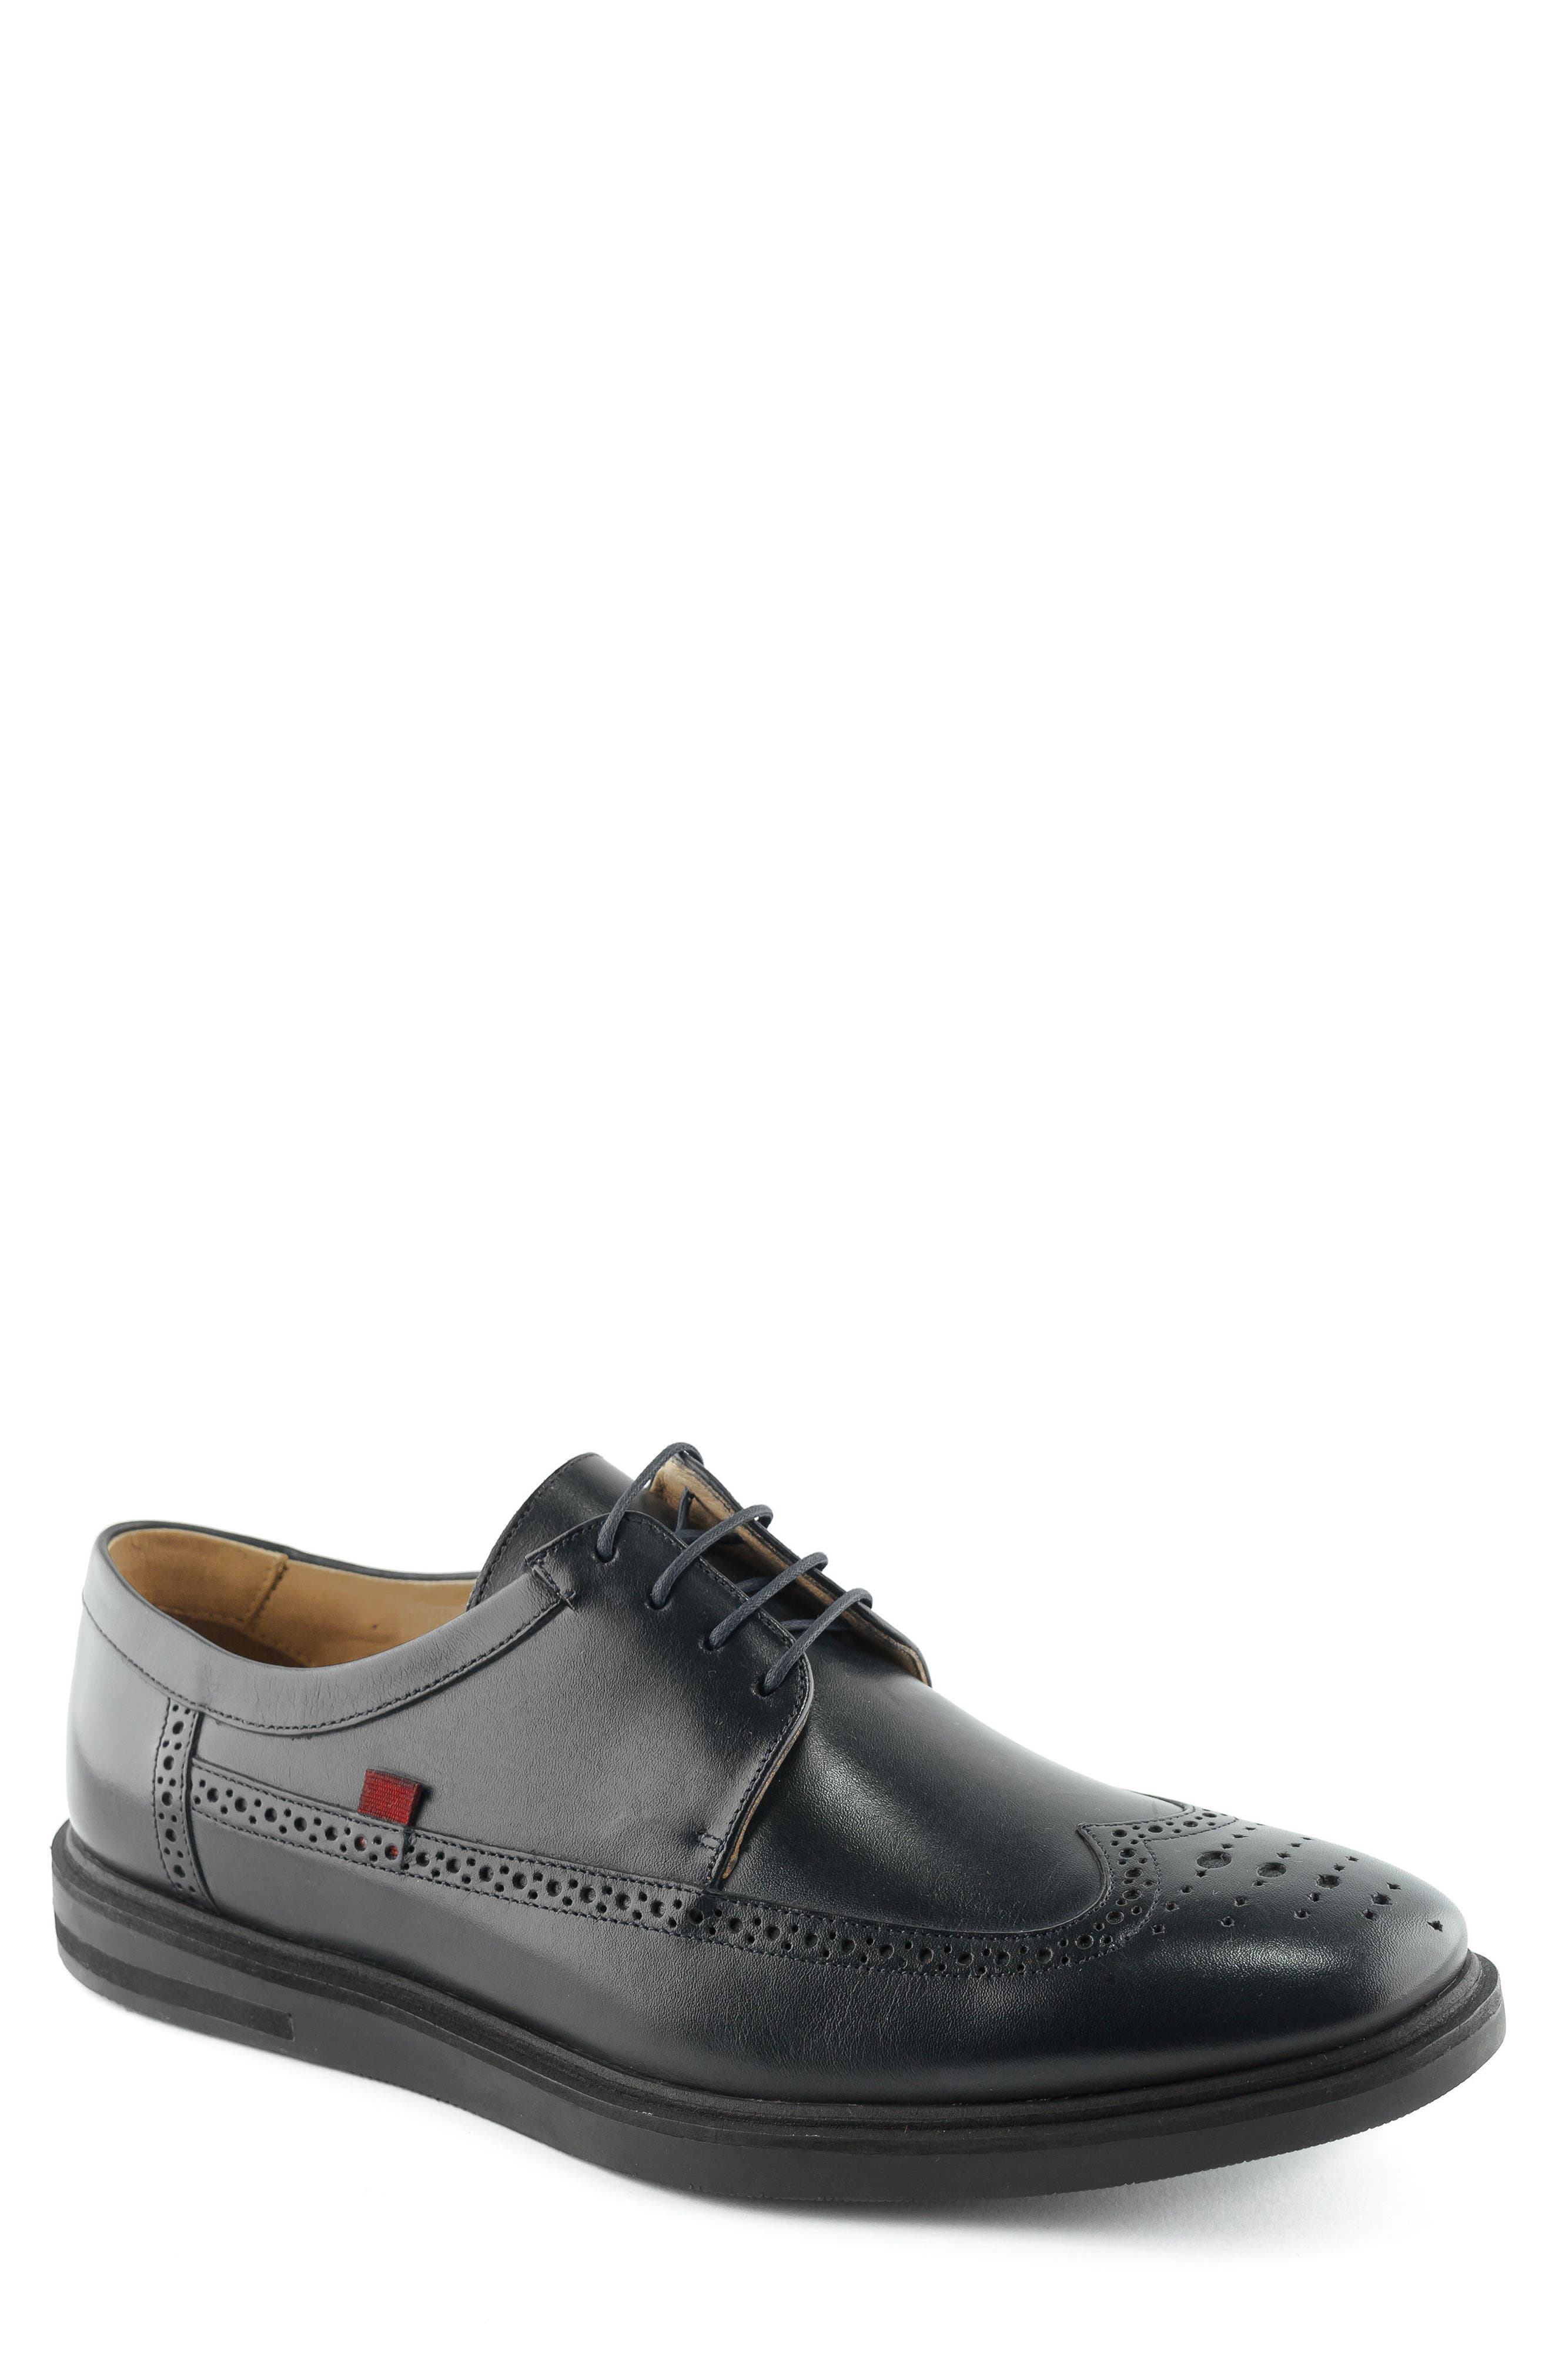 NYC Longwing Derby,                         Main,                         color, 001